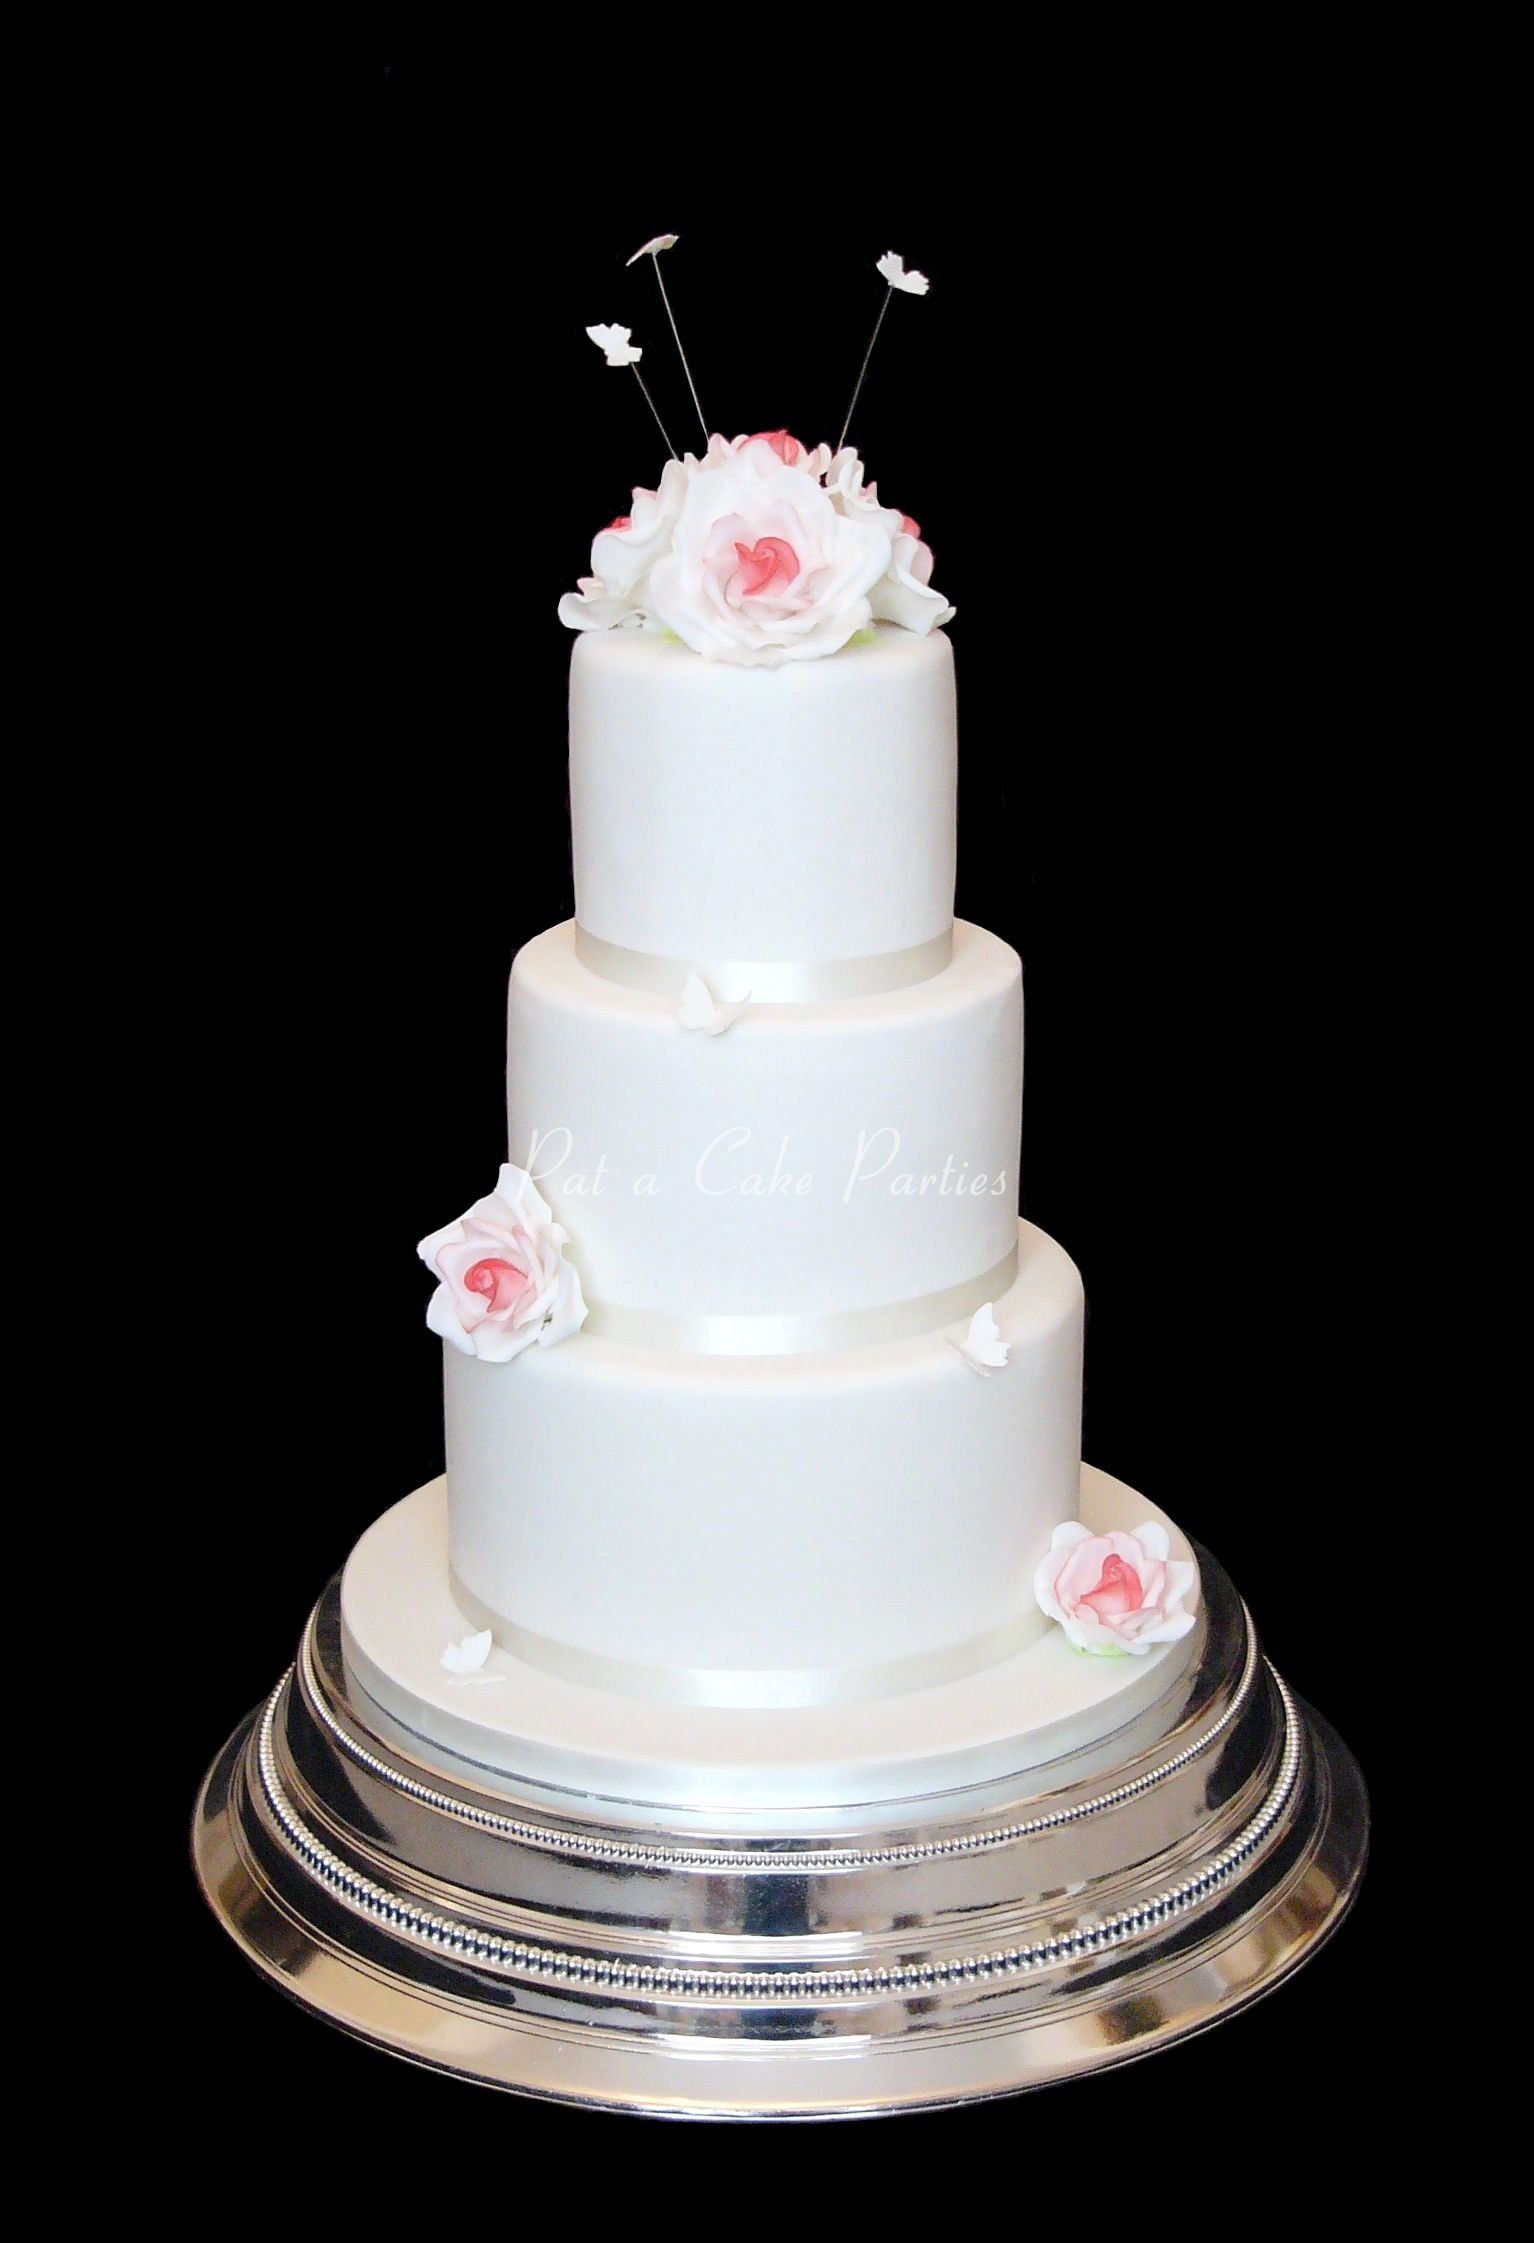 Less is more, with this elegant 3 tier wedding cake, finished with ...